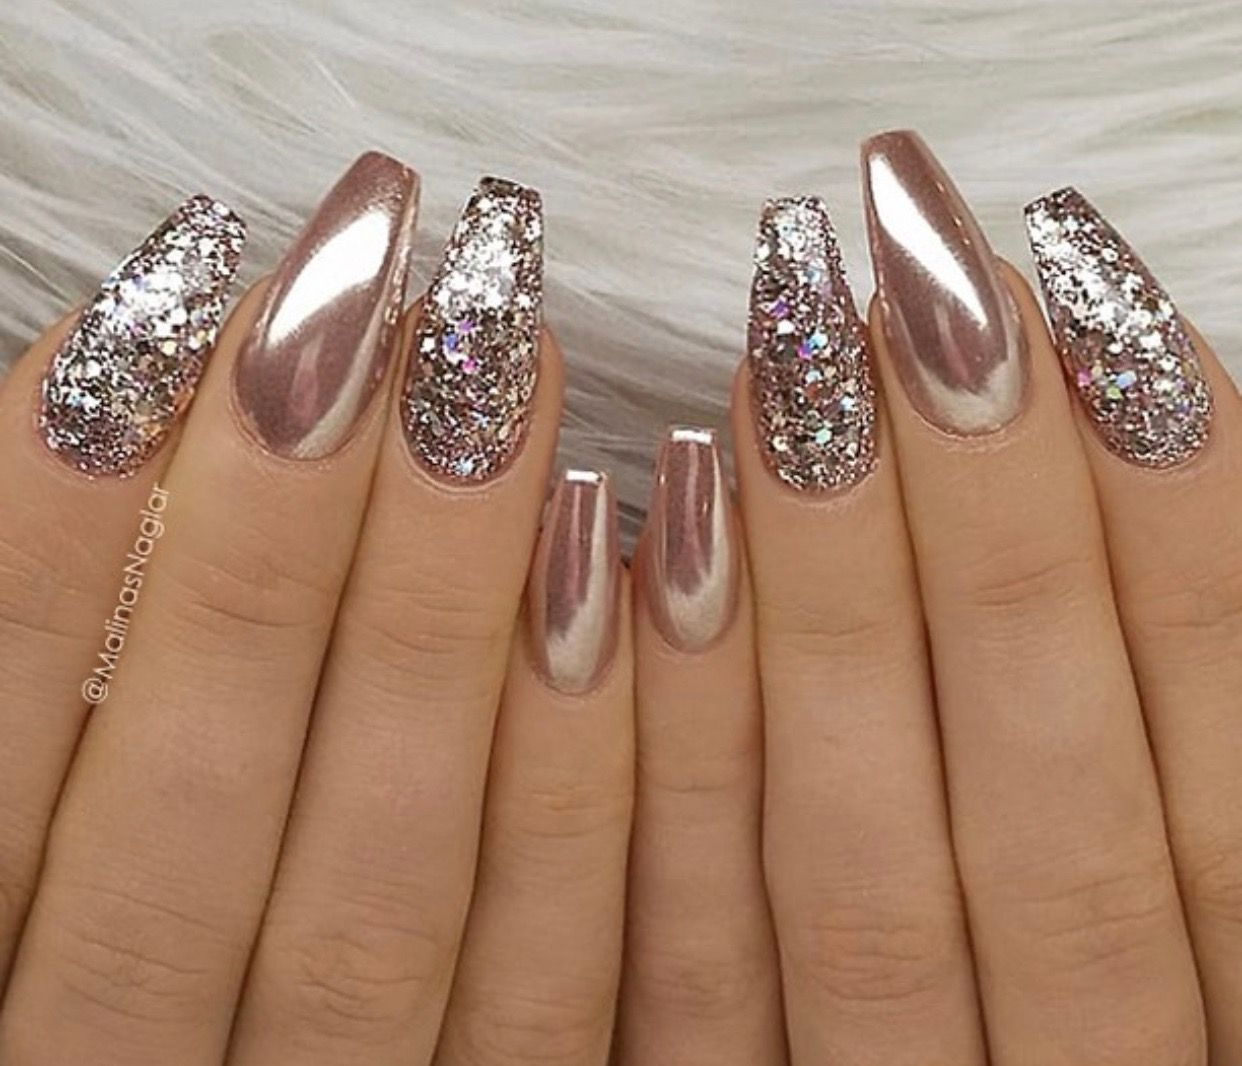 Pin by Julie Genzer Kassis on EUROPEAN NAILS - VACATION | Pinterest ...